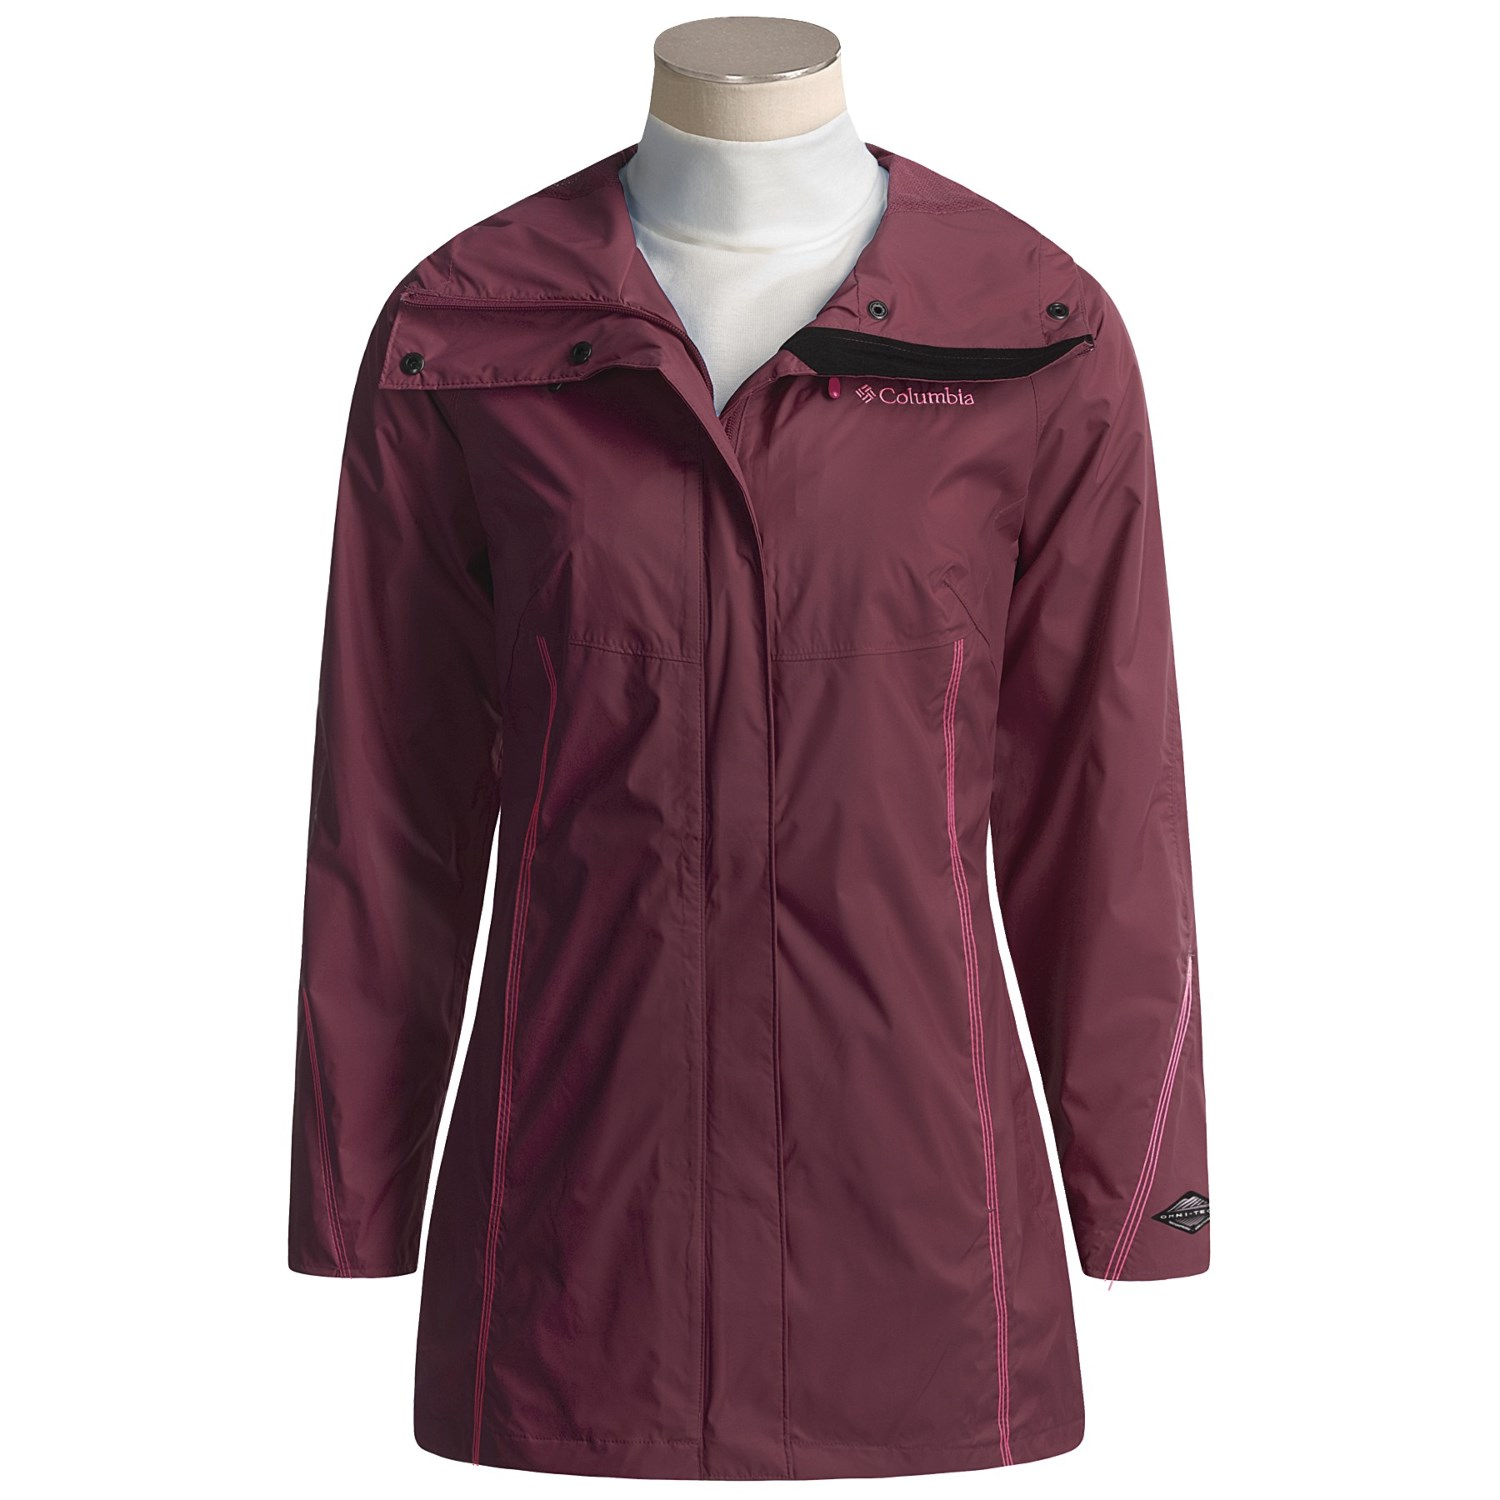 Marmot PreCip Rain Jacket - Women's at REI.com